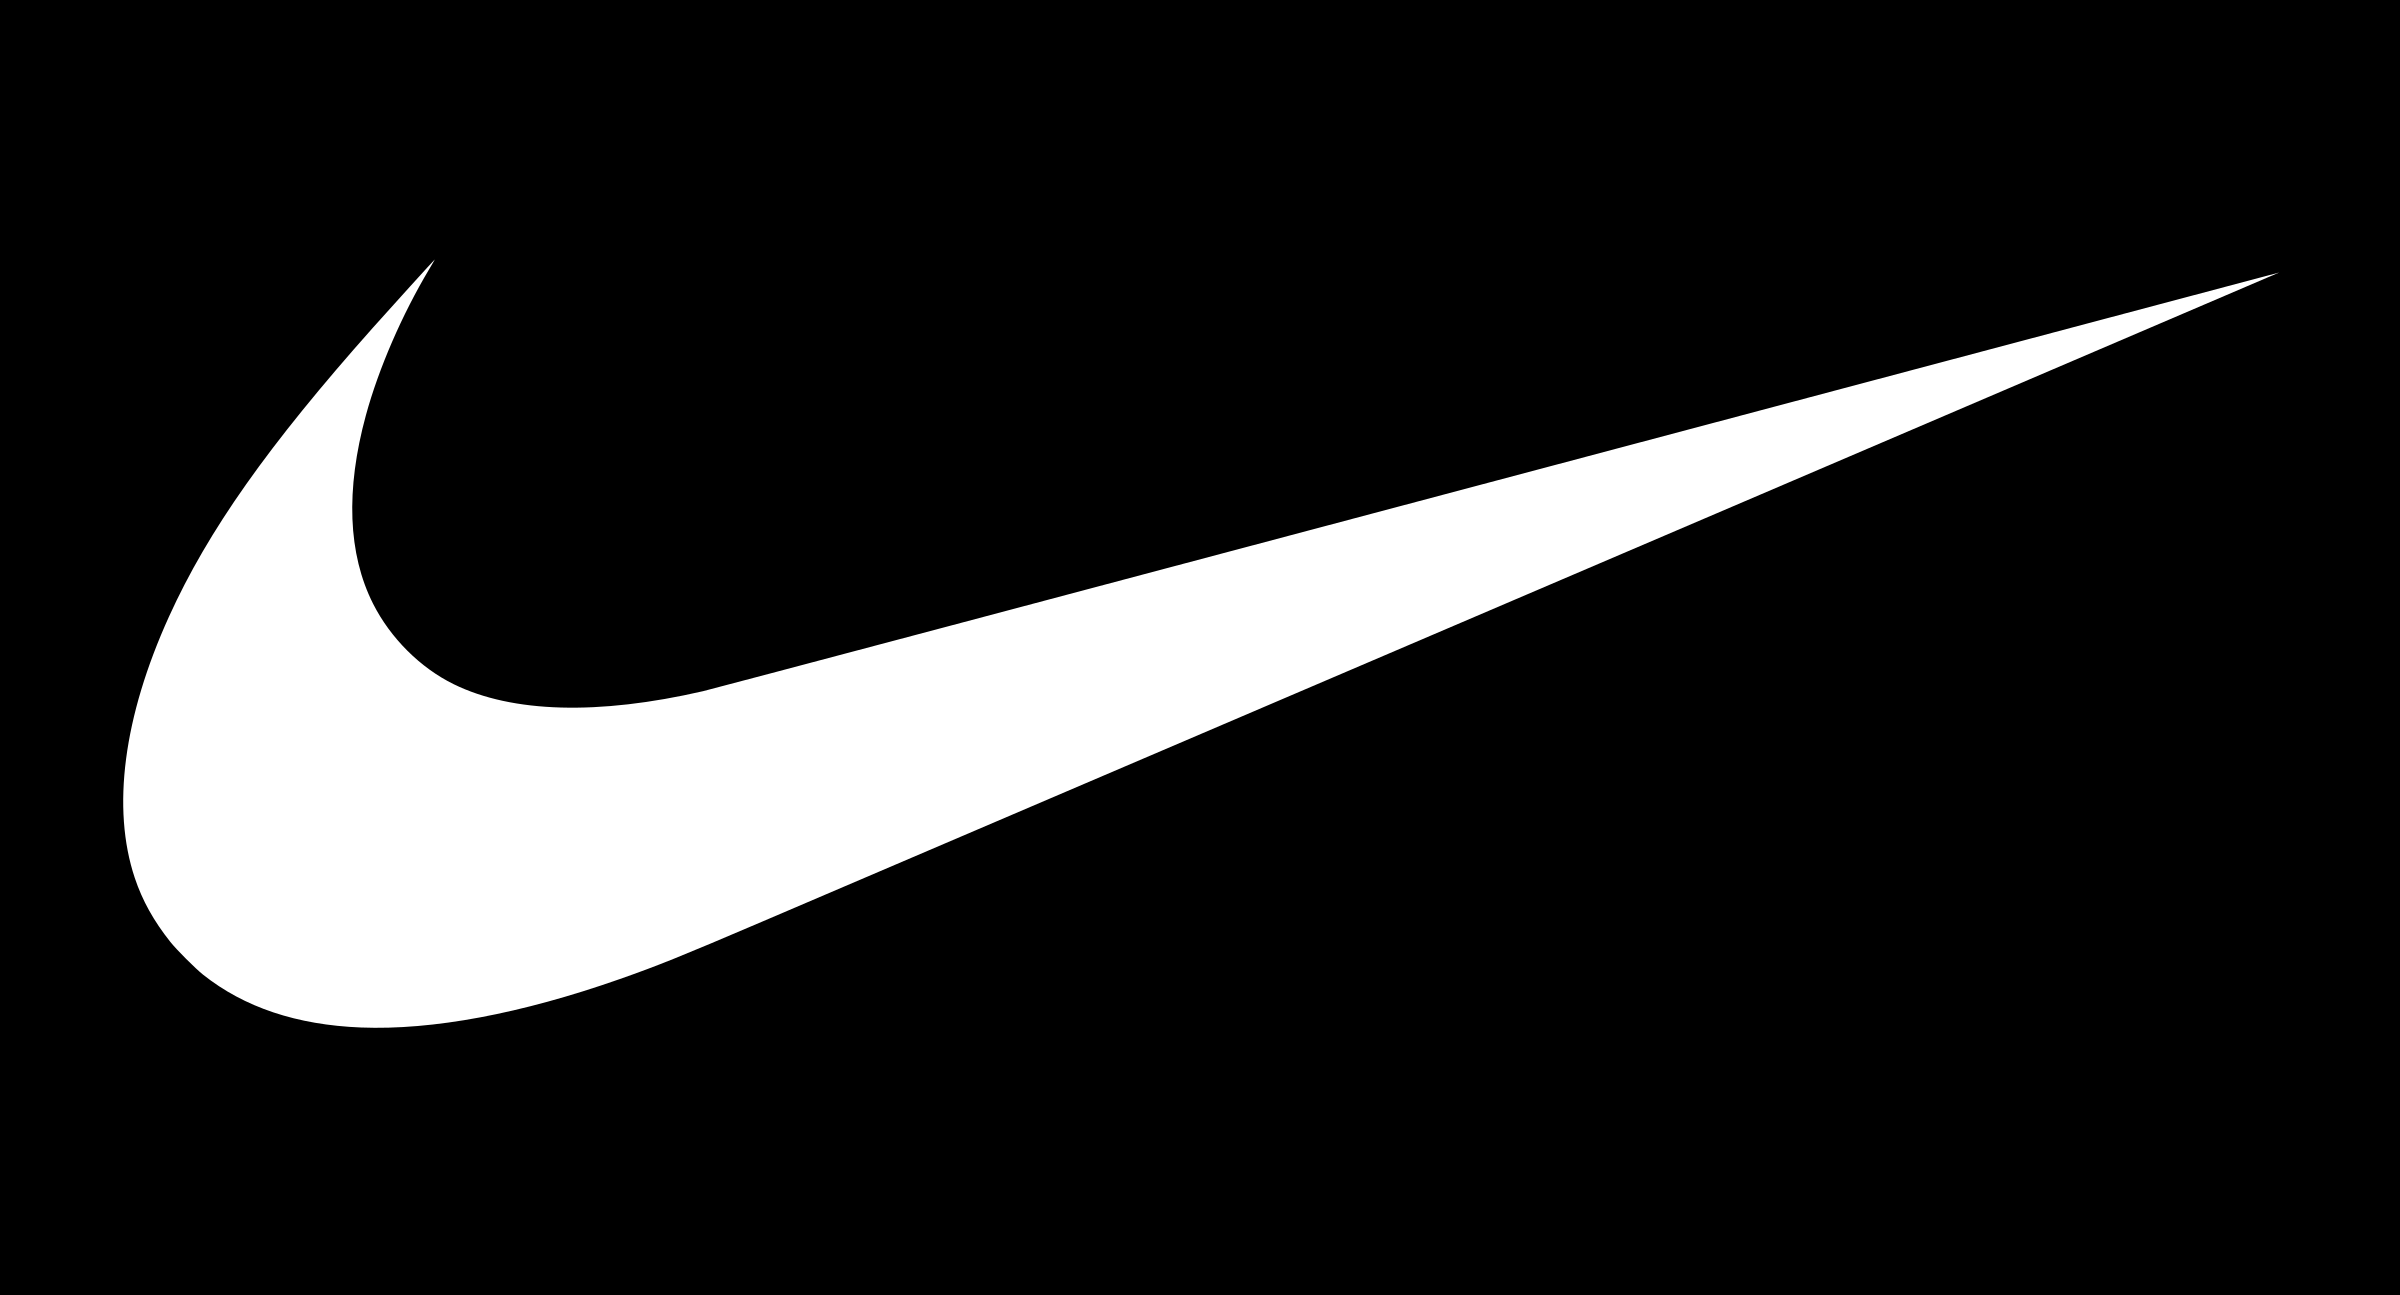 nike logo png transparent svg vector freebie supply rh freebiesupply com nike vision vector logo nike logo vector svg